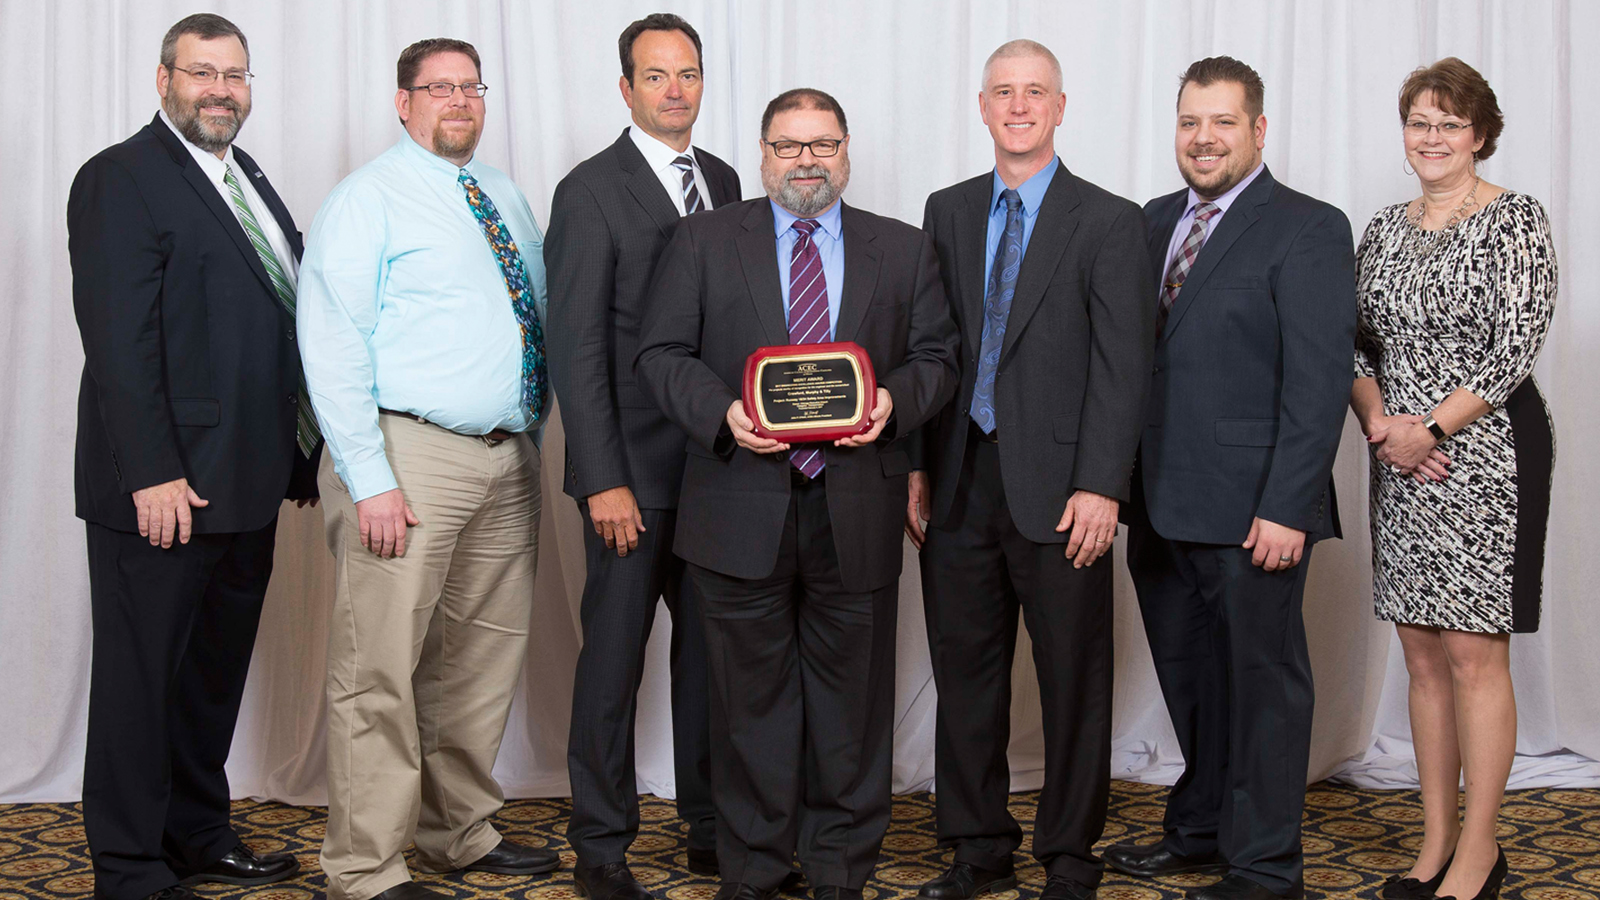 ACEC Illinois Merit Award for Chicago Executive